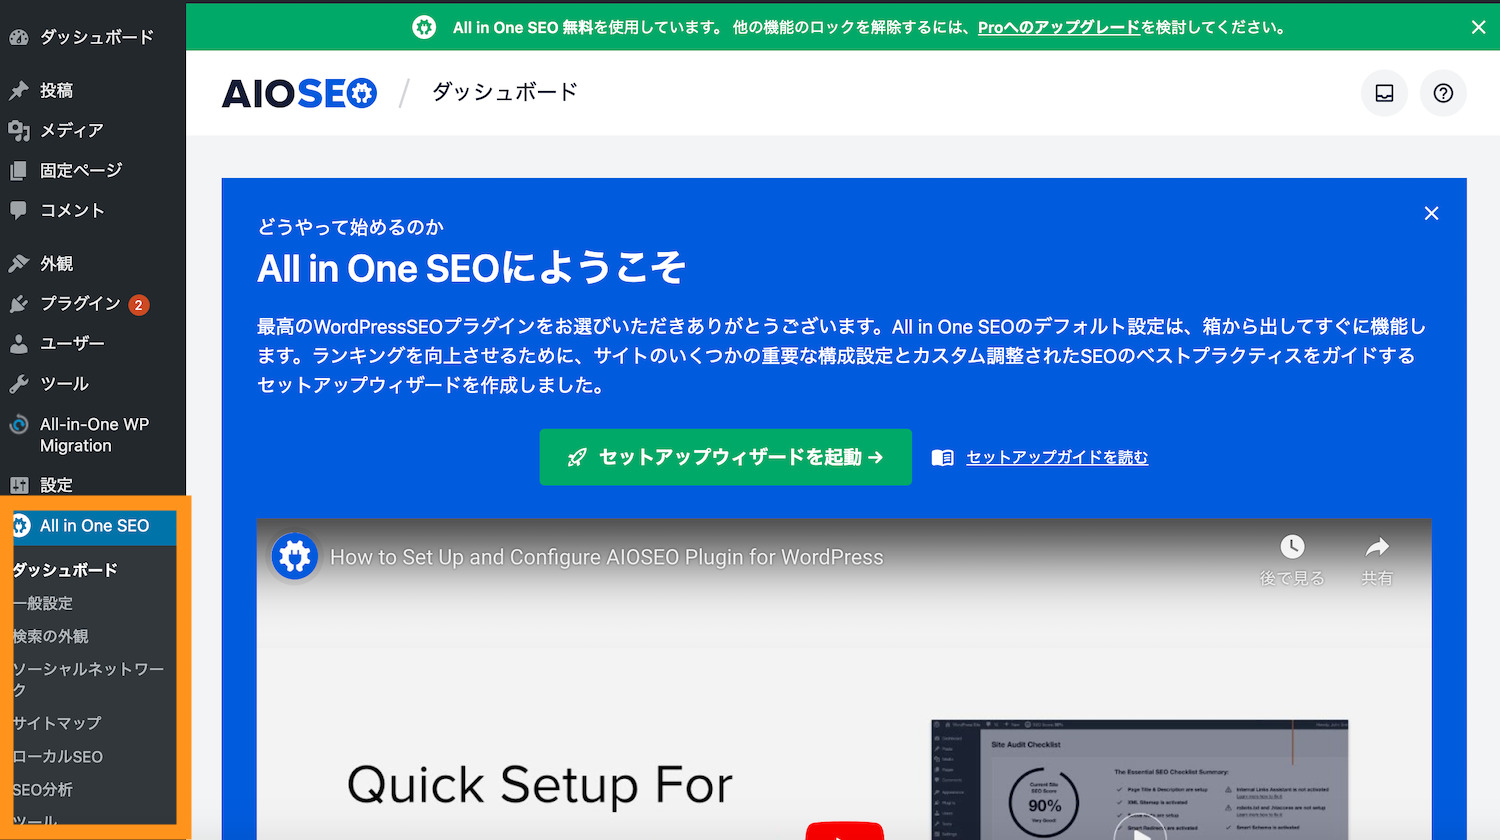 All in one SEO ダッシュボード